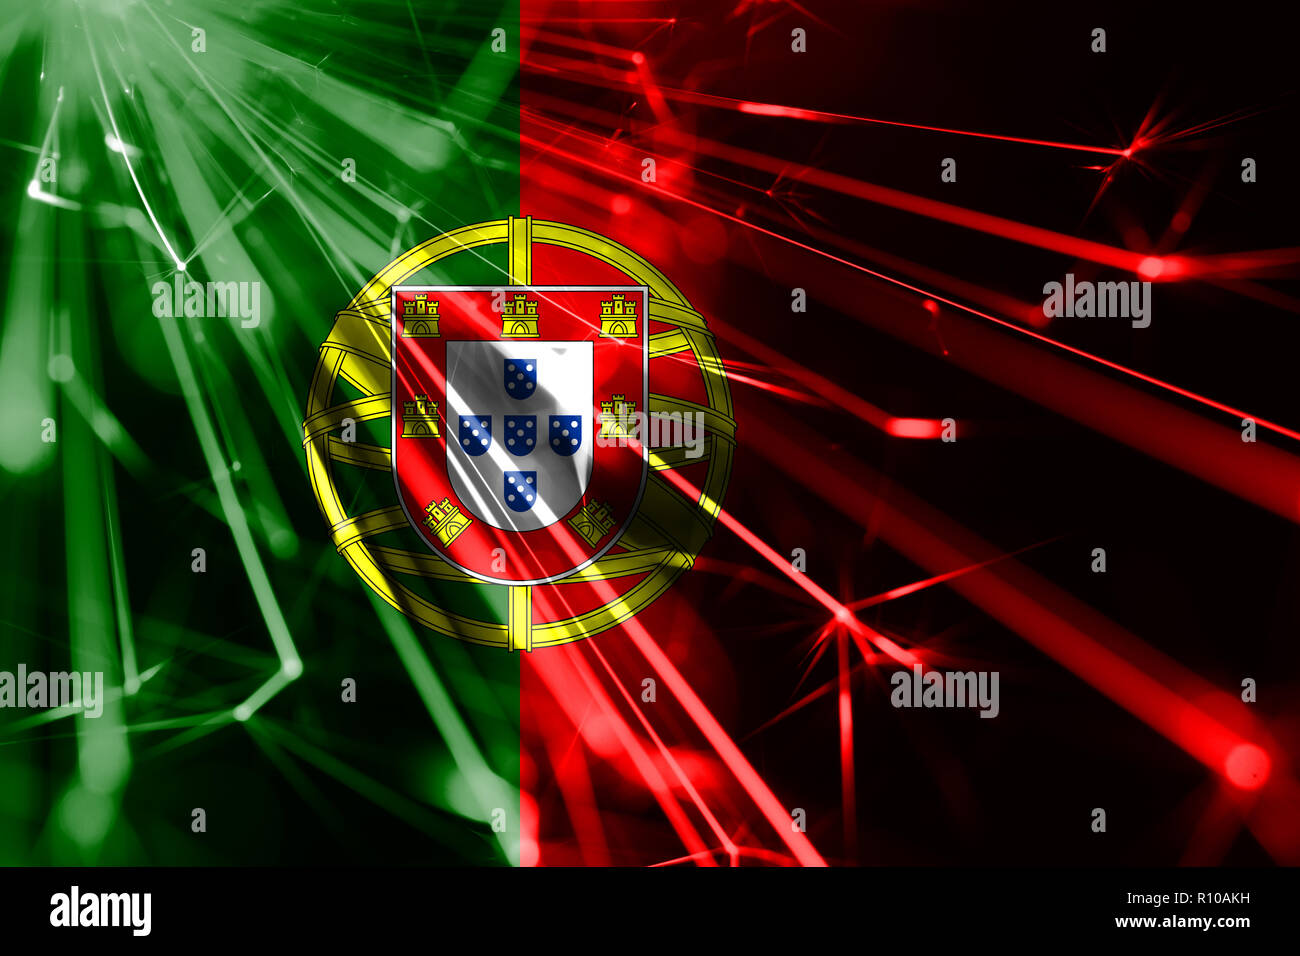 Christmas In Portugal 2019.Portugal Shining Fireworks Sparkling Flag New Year 2019 And